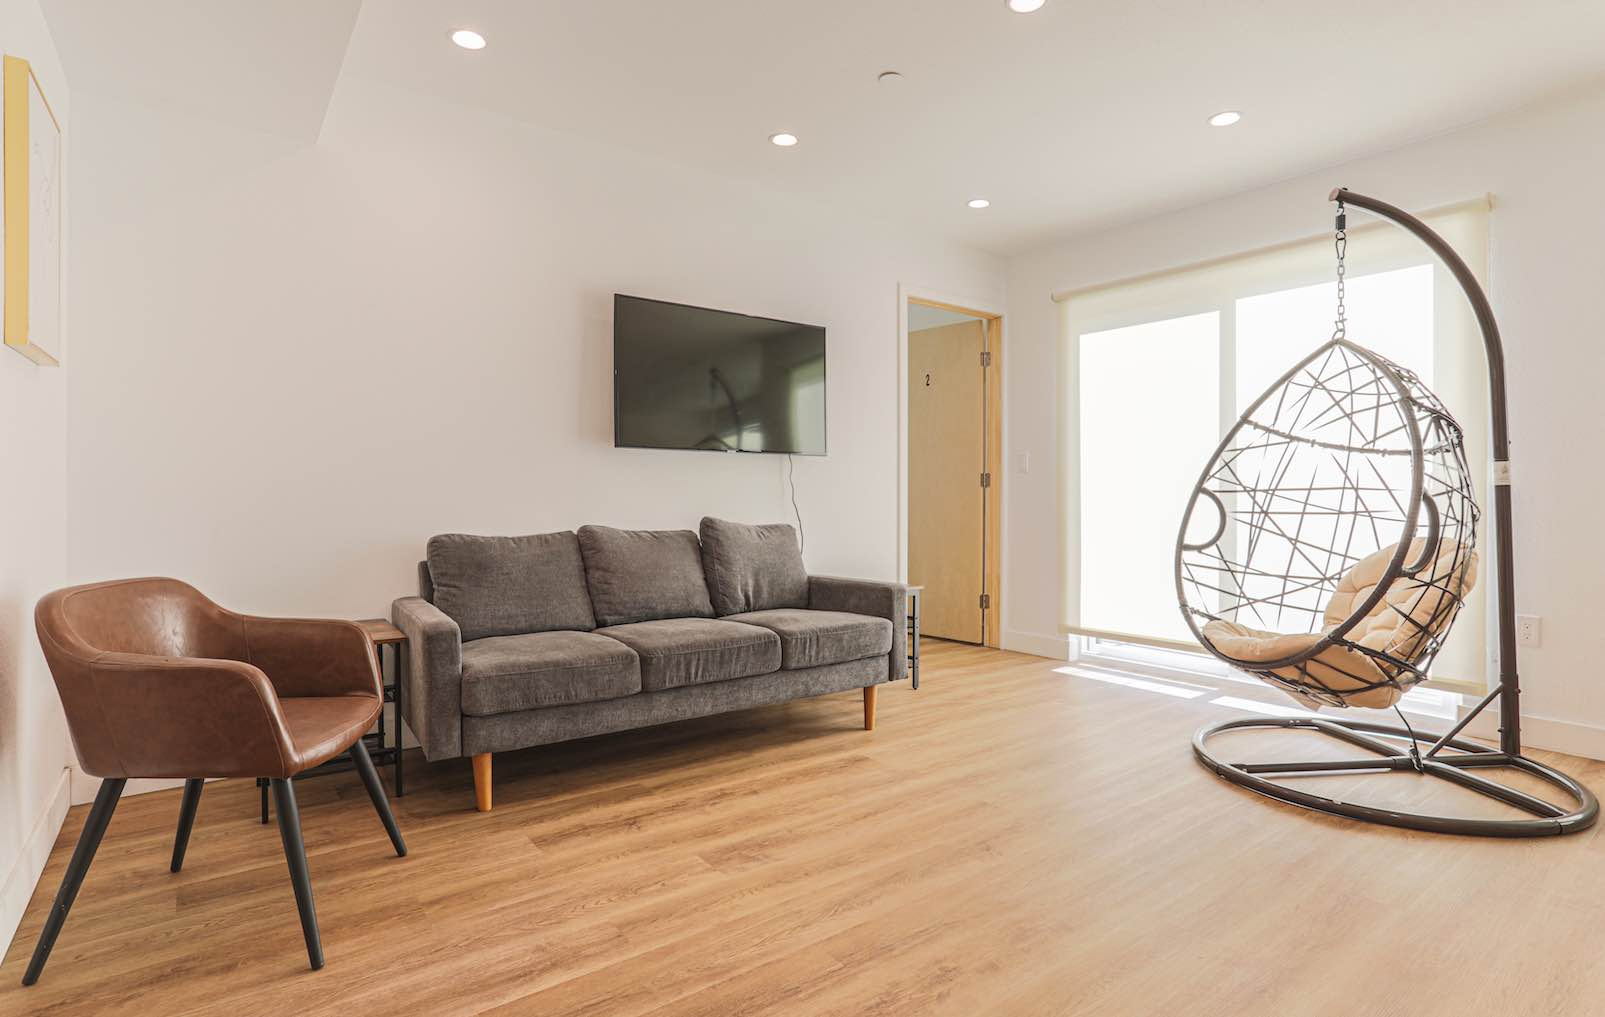 Coliving Startup Tripalink Sees a 98% Occupancy Rate: Seeks New Master Leases in LA